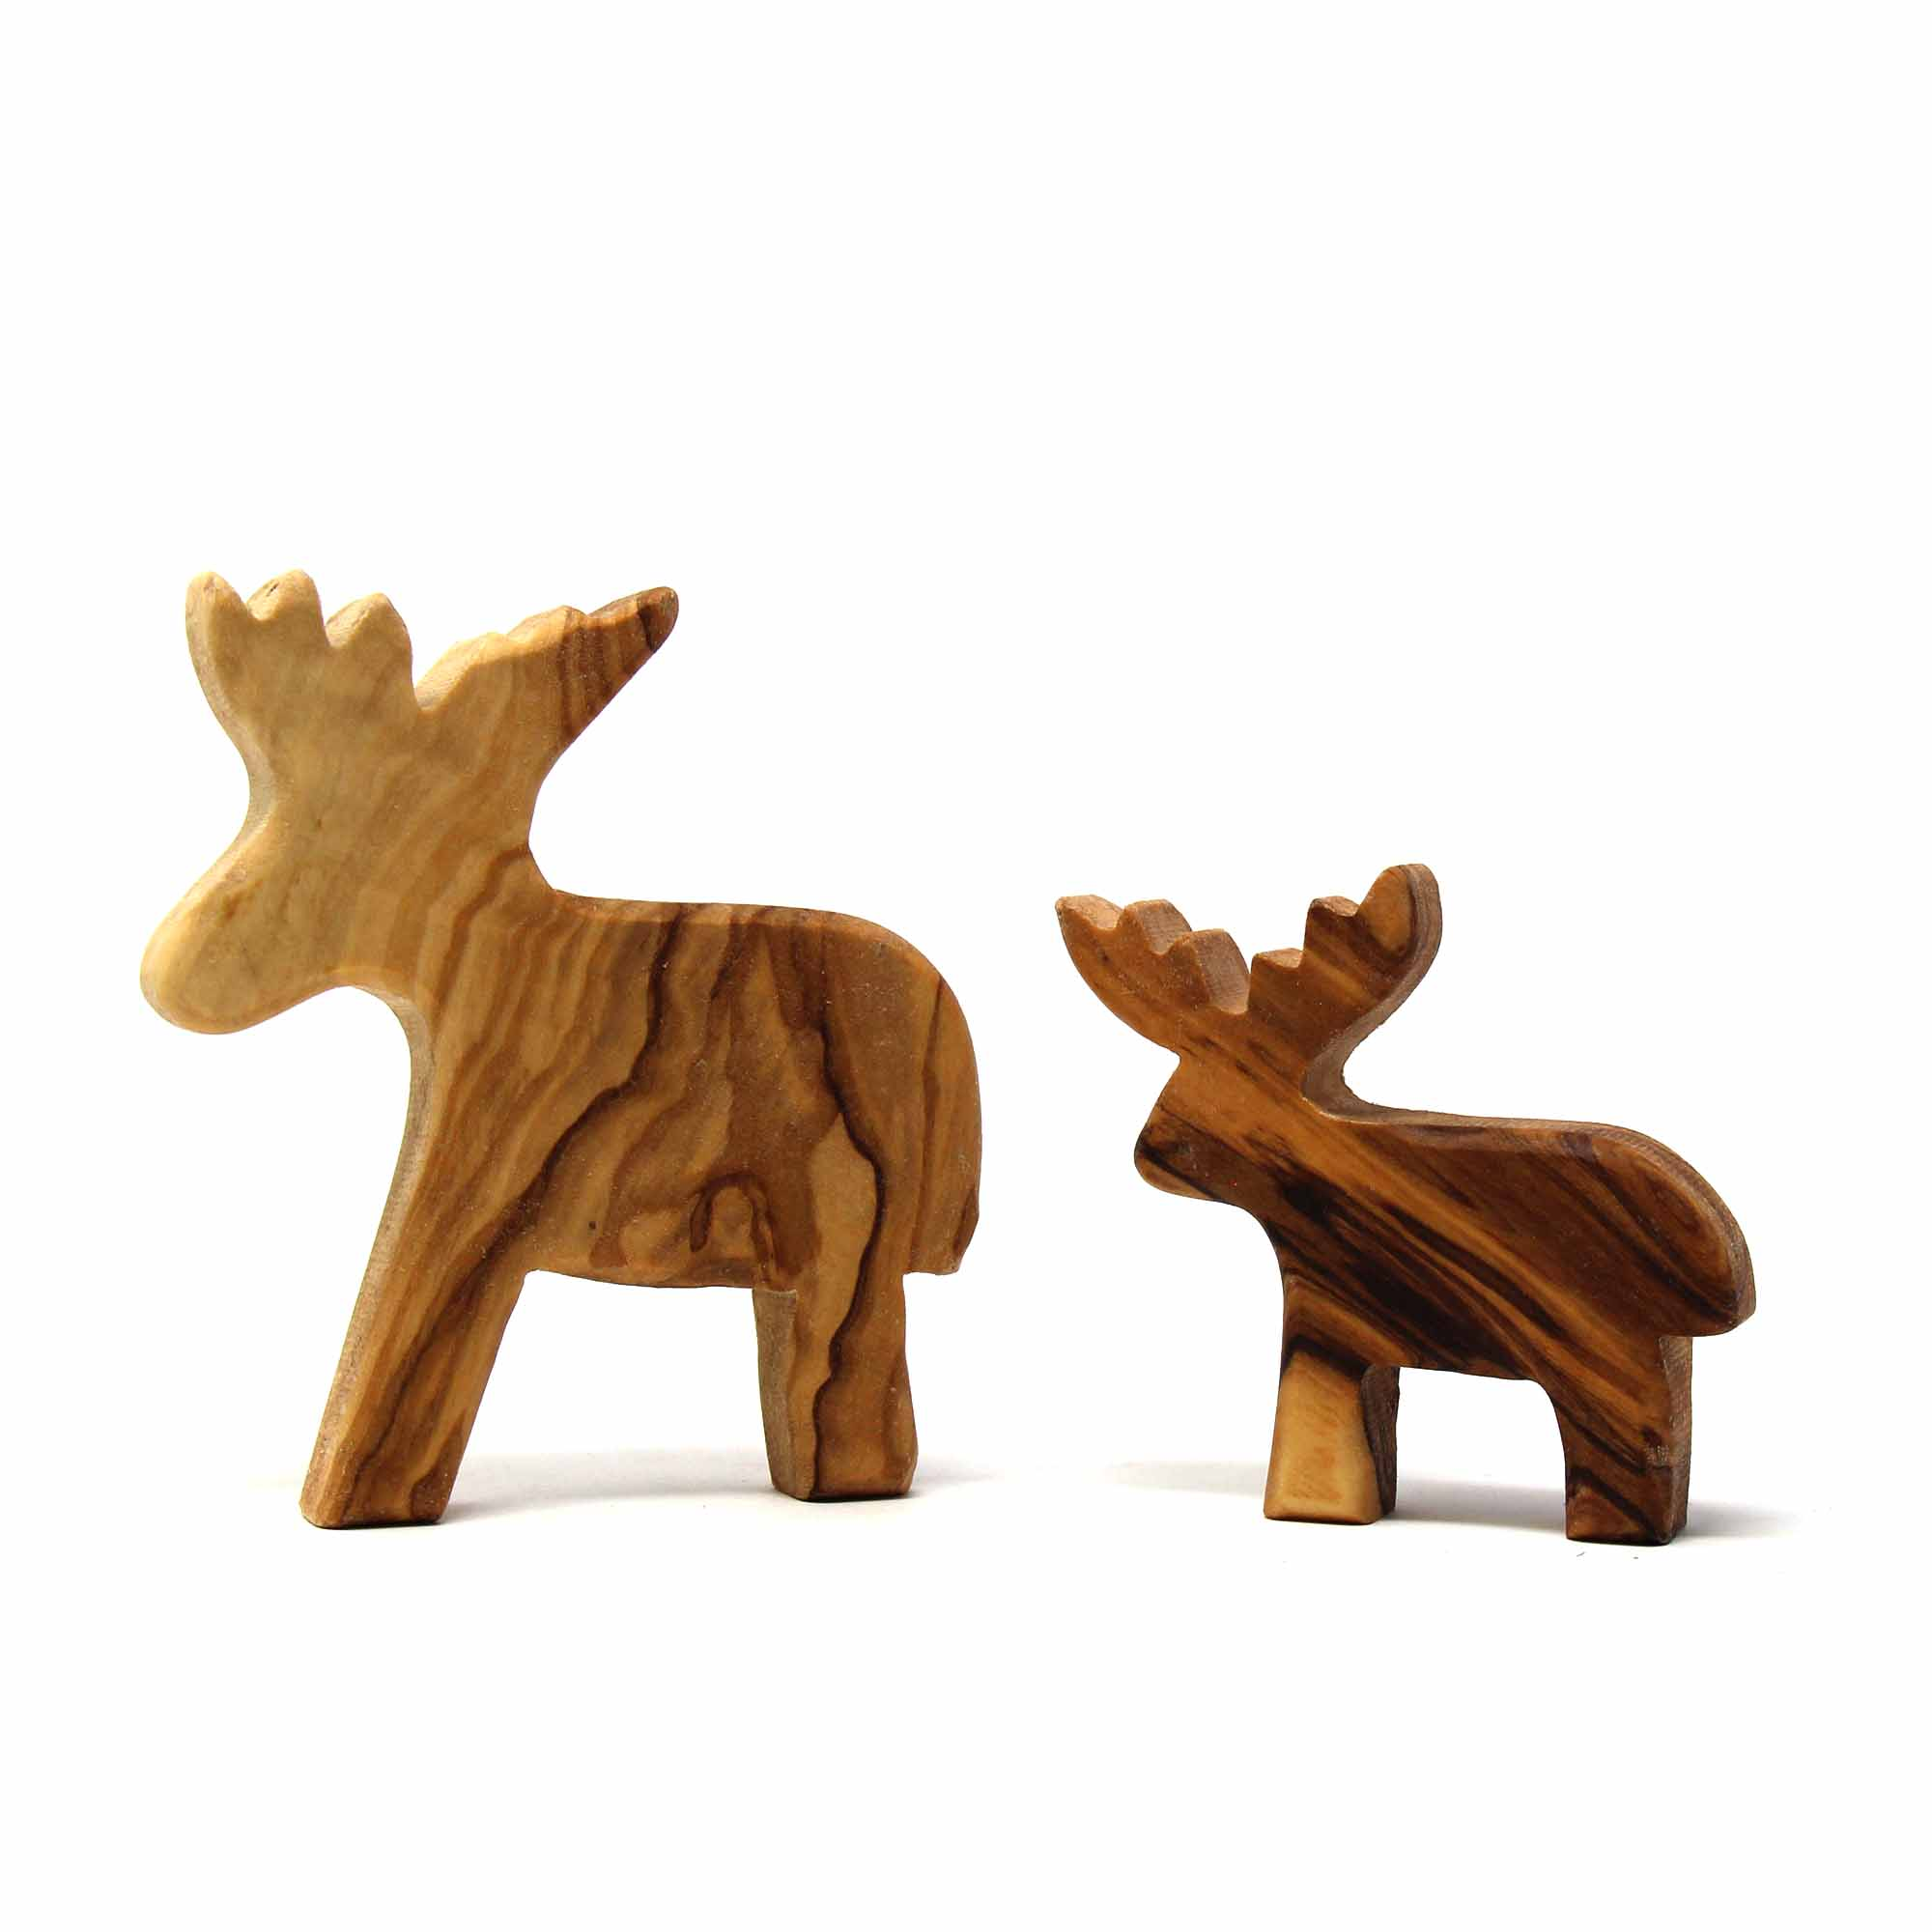 Set of Two Olive Wood Reindeers - Large and Small